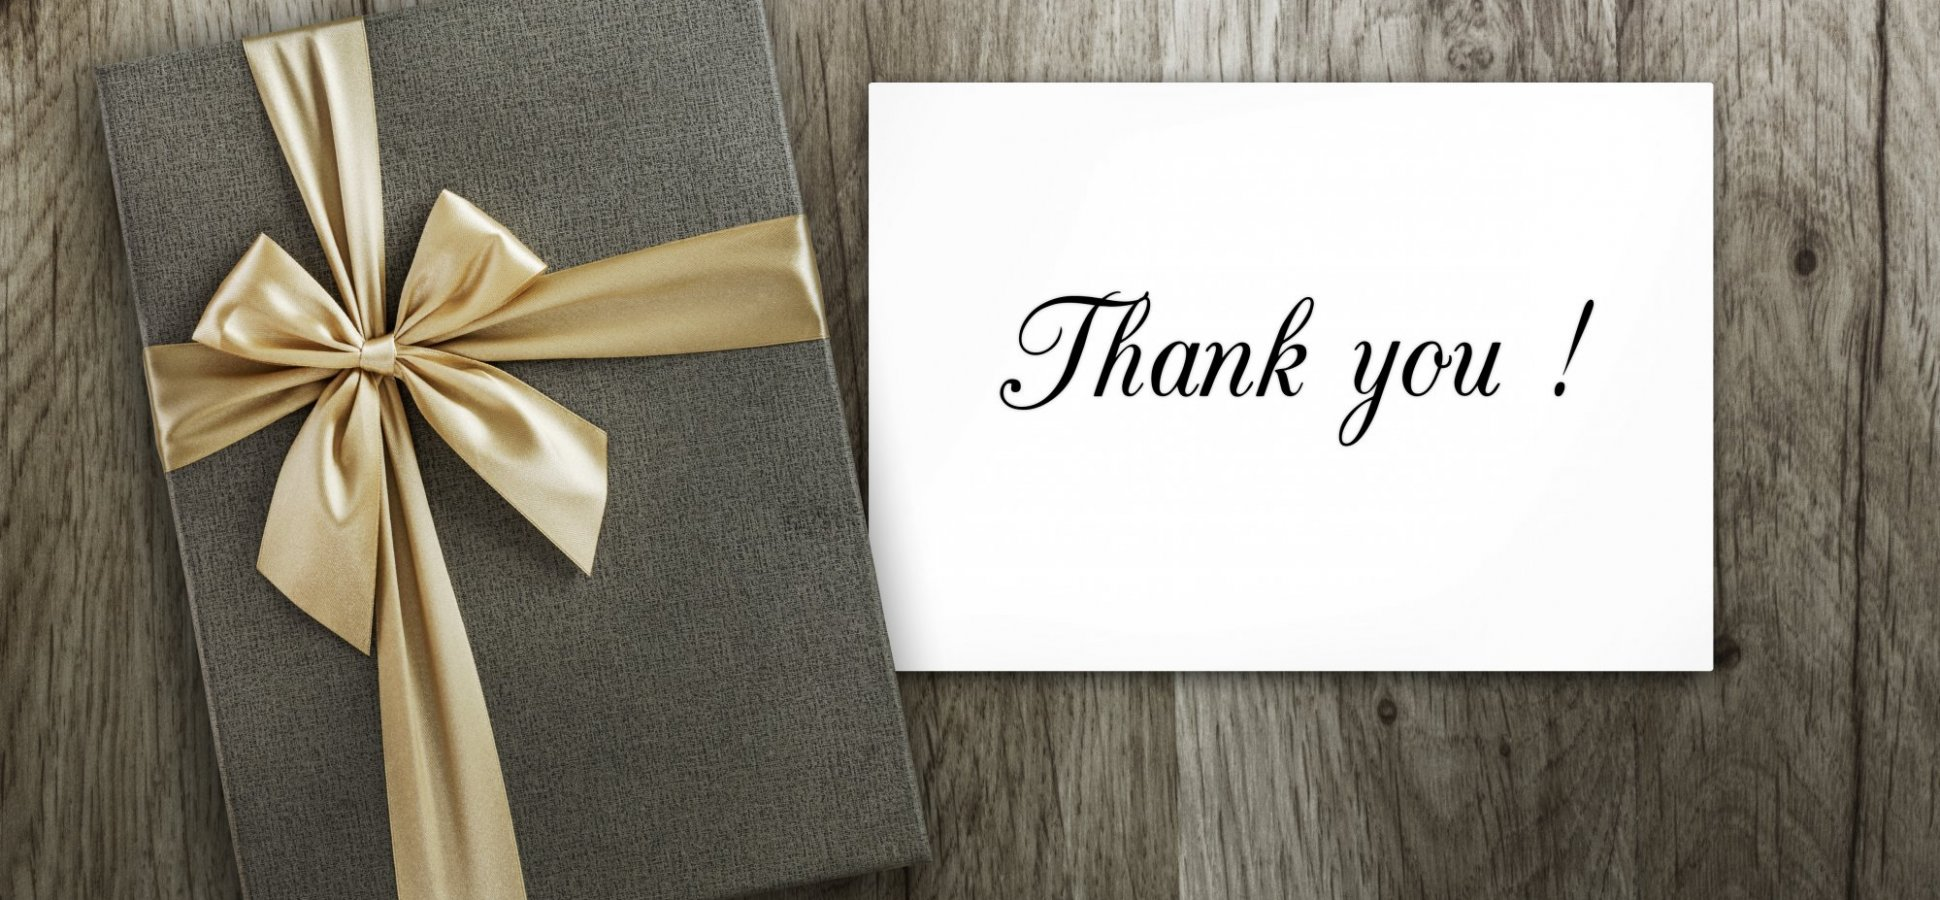 The Best Gift for Employees Is Gratitude -- Here's Why